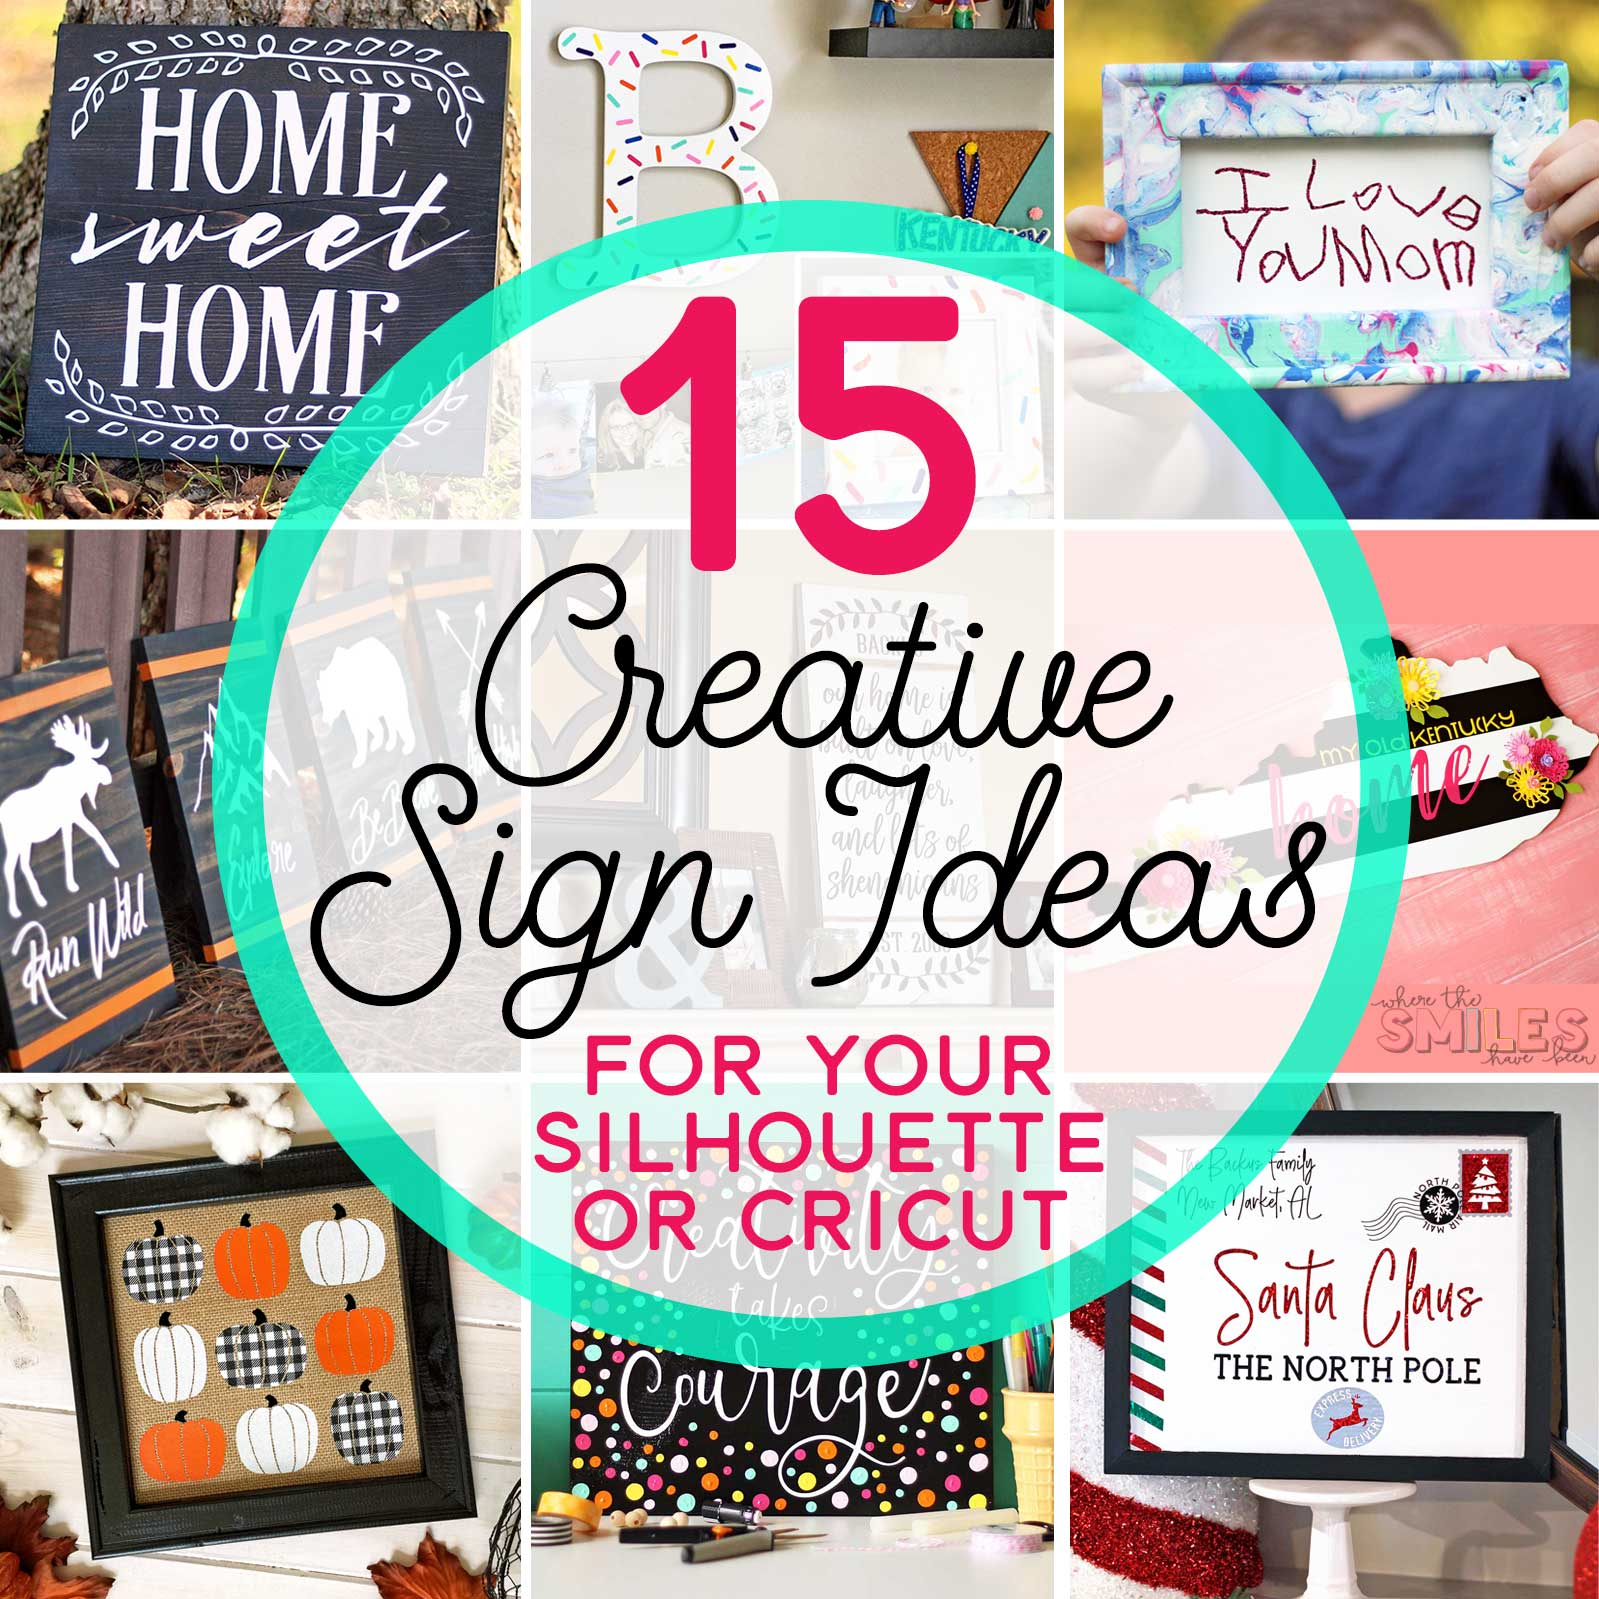 15 Creative Sign Ideas You Can Make with a Silhouette or Cricut | Where The Smiles Have Been #Silhouette #Cricut #DIY #sign #farmhouse #holidaydecor #homedecor #vinyl #HTV #stencils